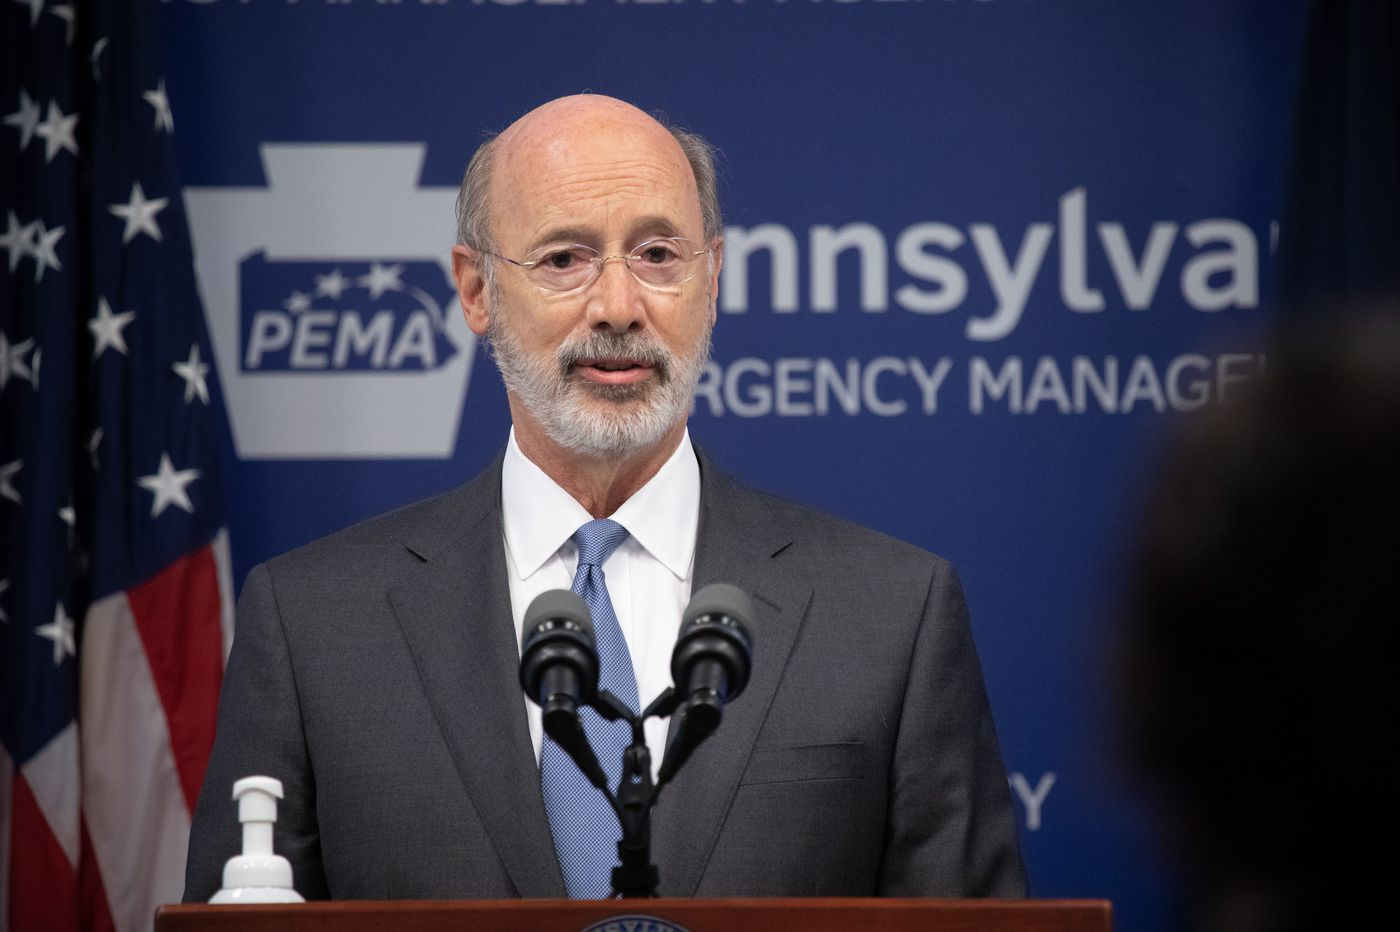 Pa. drop in COVID-19 cases wins federal praise, and New Jersey works to reopen colleges